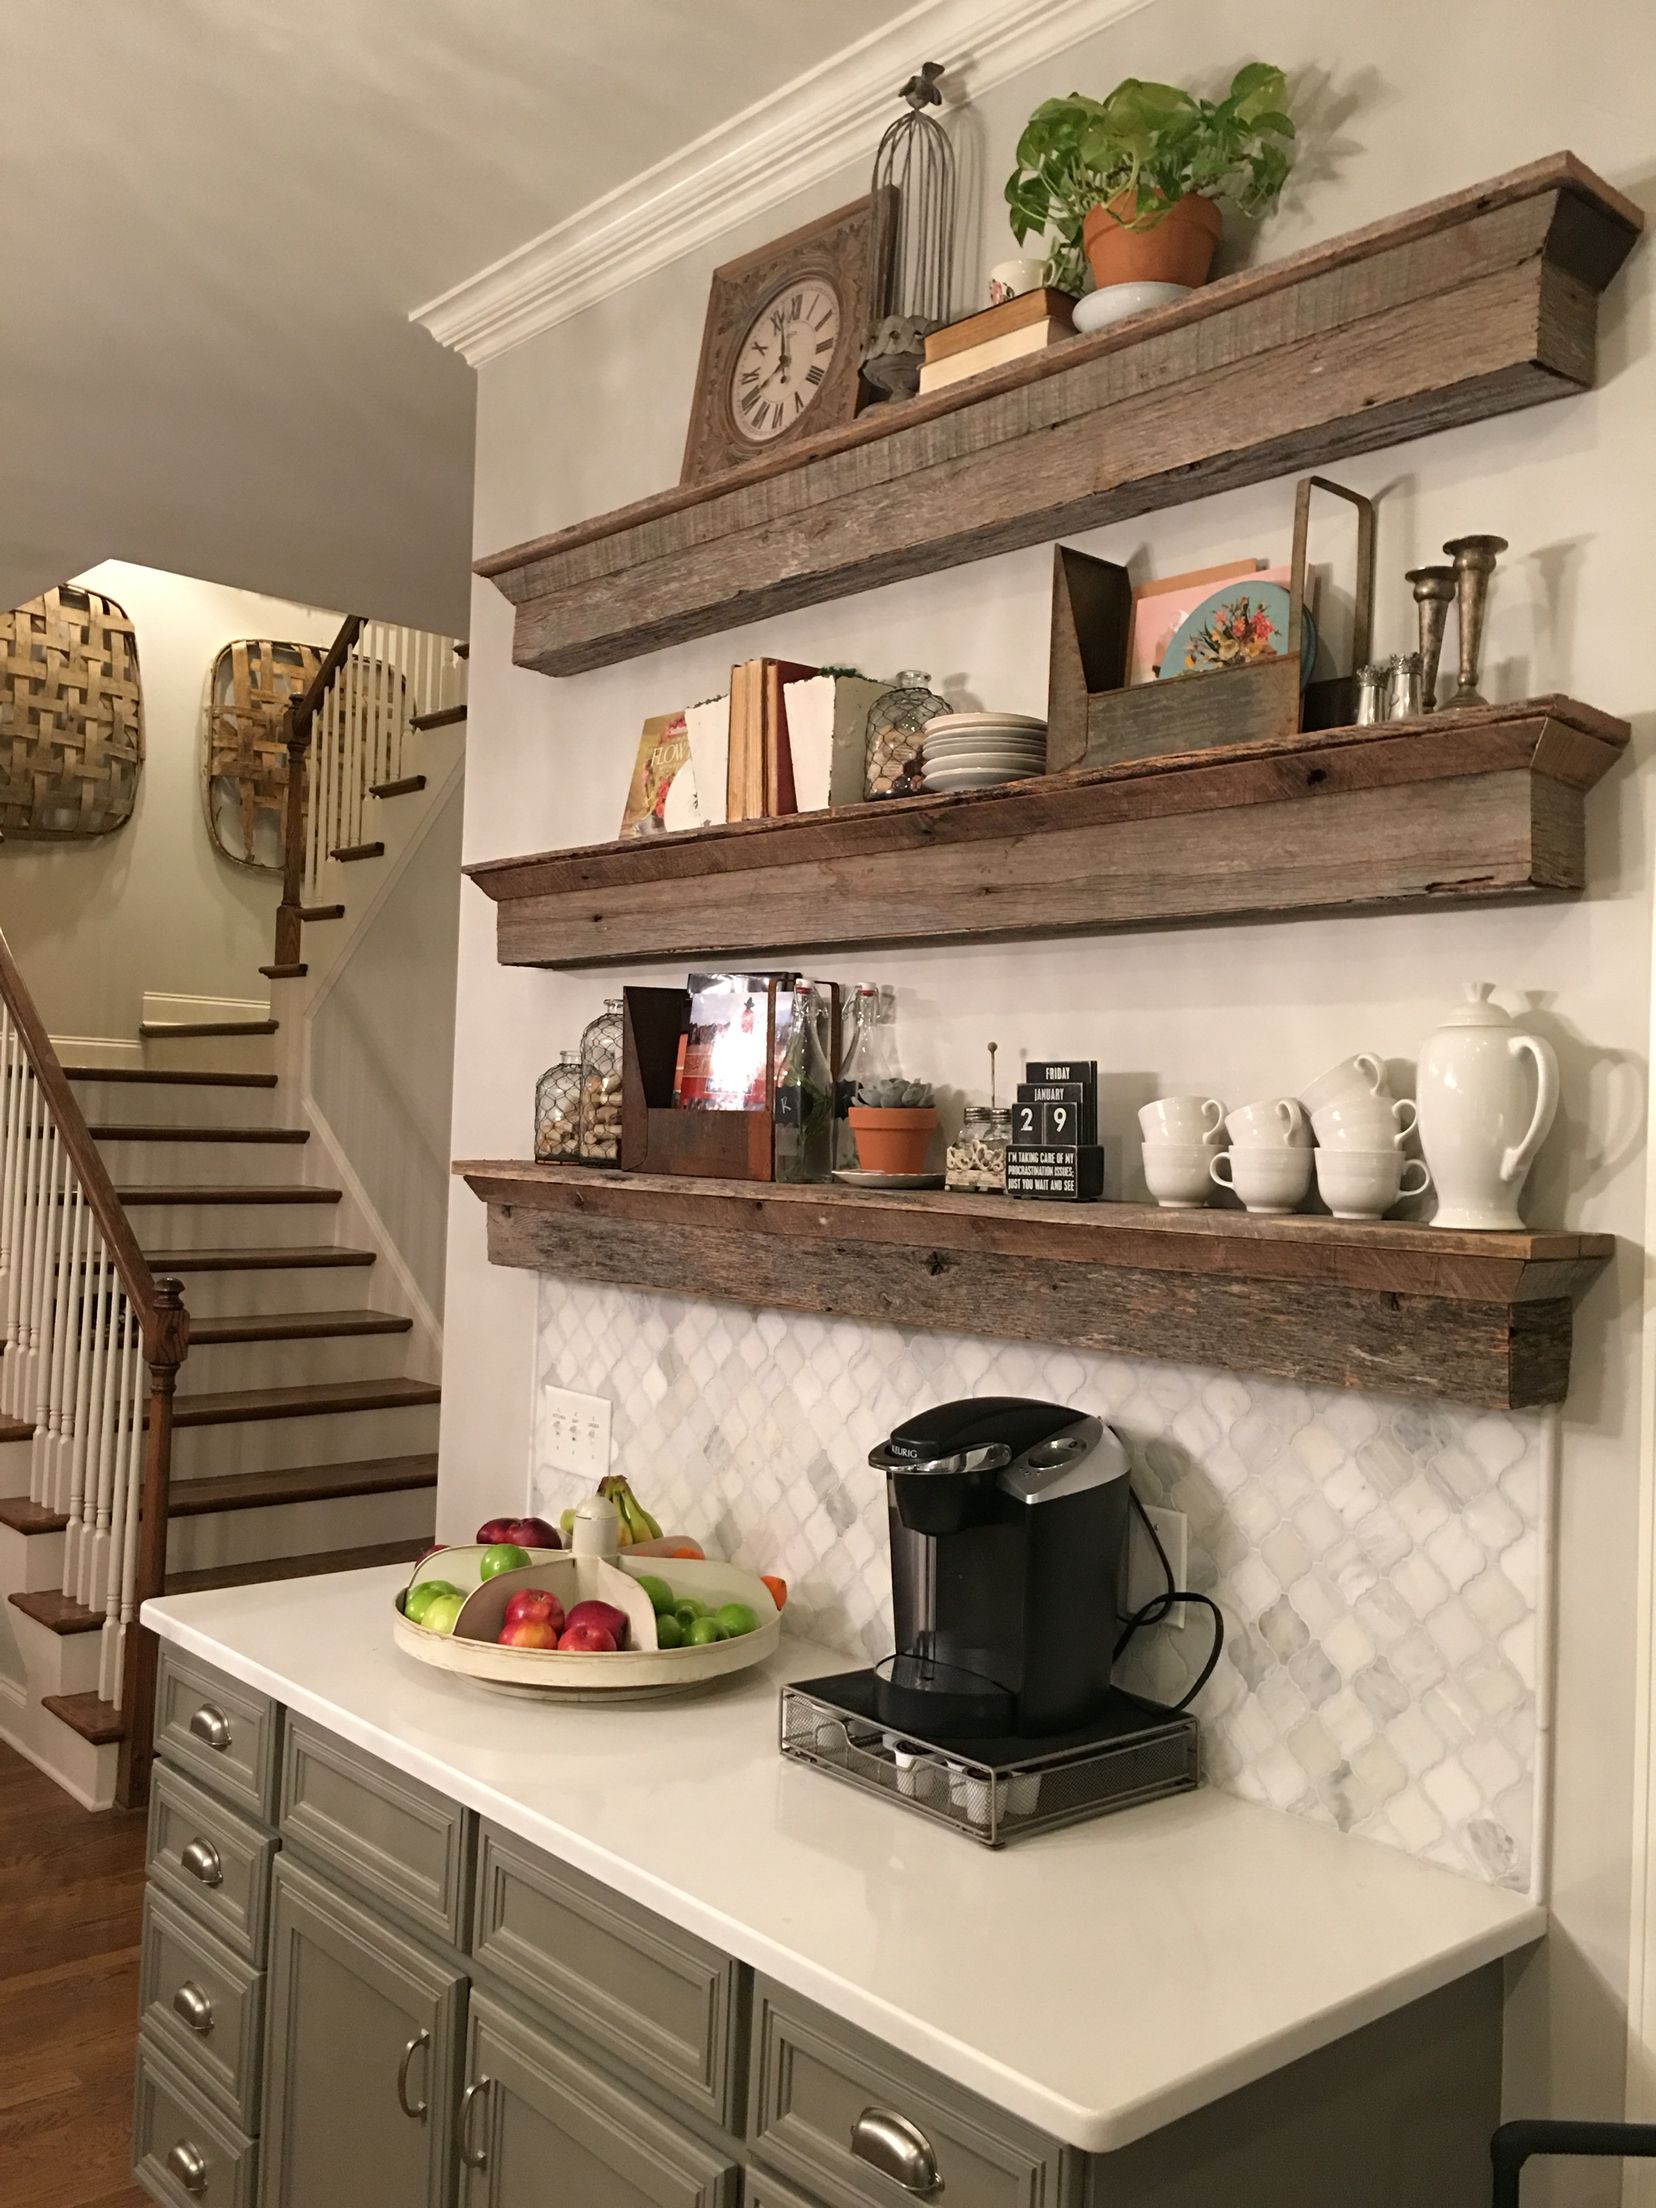 Floating Barnwood Shelves Coffee Bar Area A Great Solution To A Tradition Cabinet By Www Annaberrydesign Co Coffee Bar Home Barnwood Shelves Home Kitchens